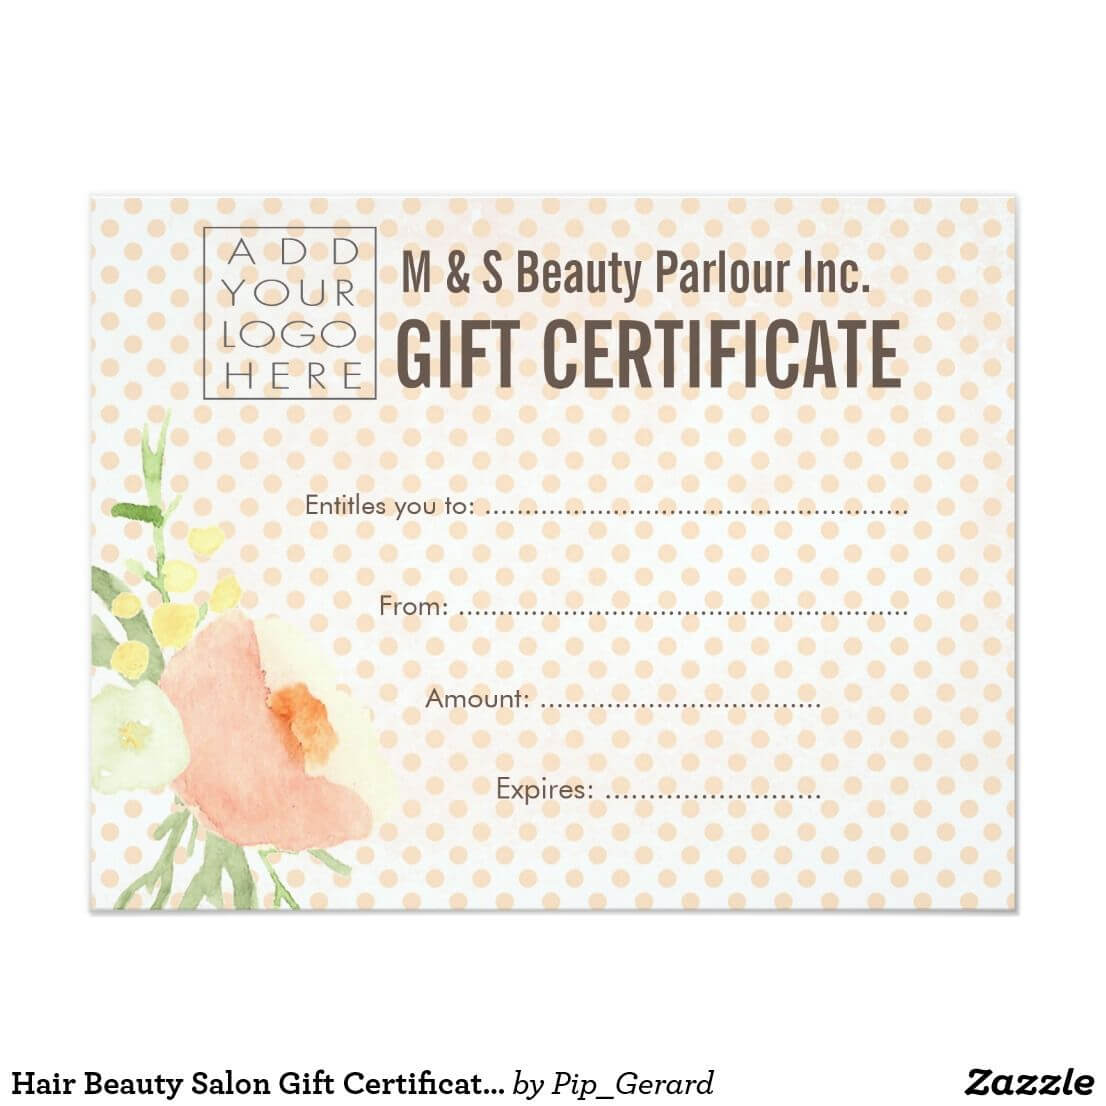 003 Salon Gift Certificate Template Amazing Ideas Printable Within Nail Gift Certificate Template Free